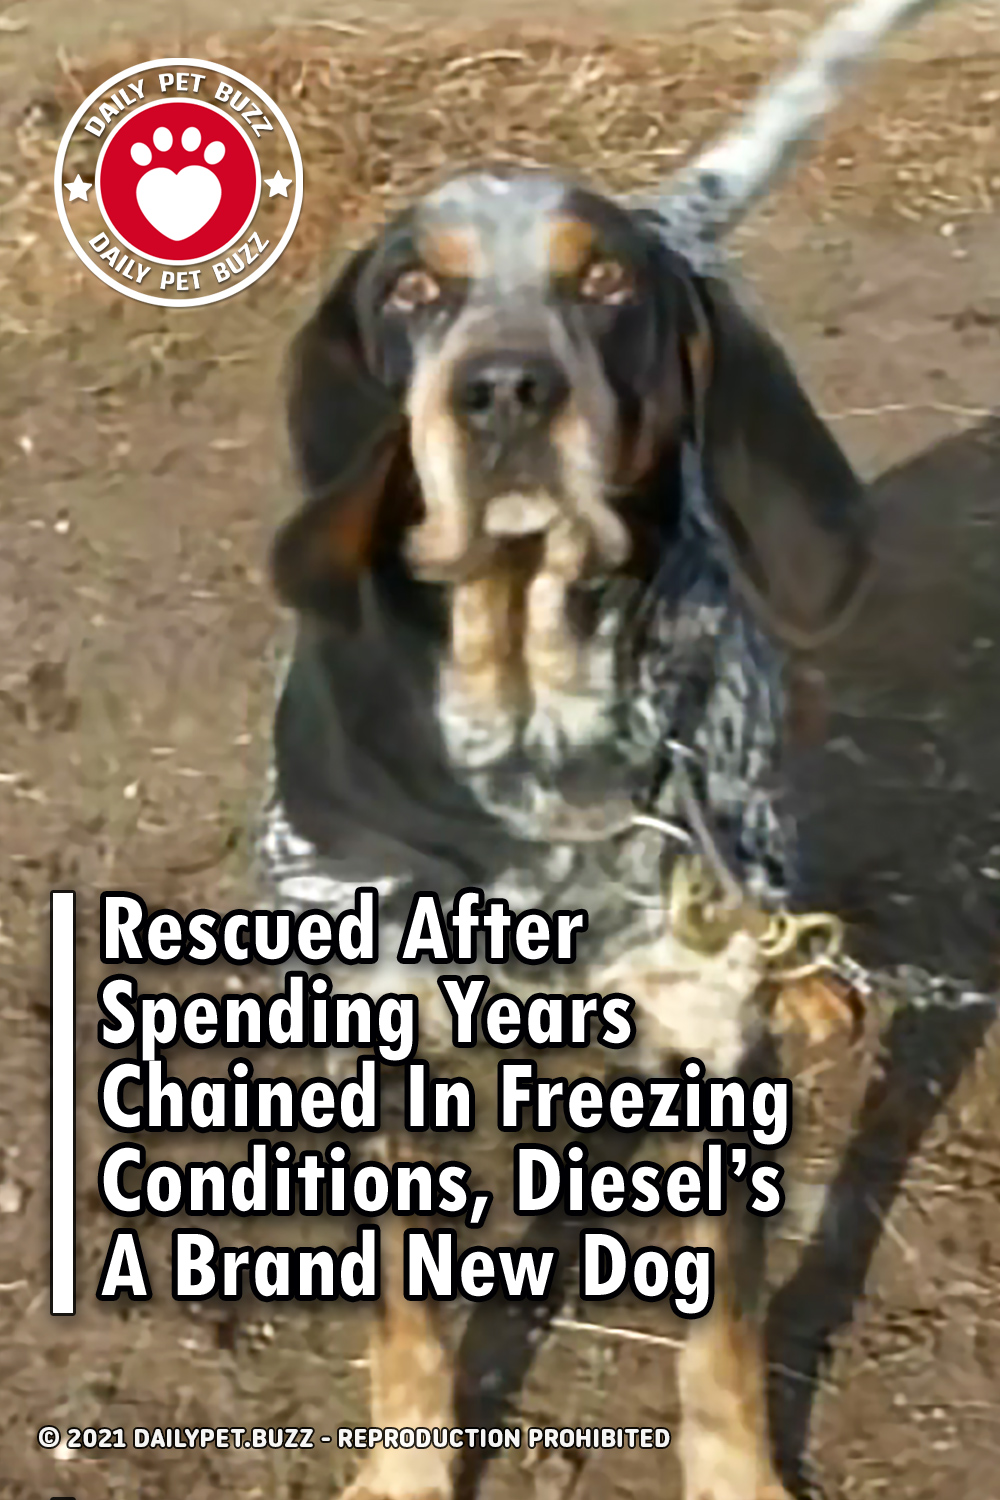 Rescued After Spending Years Chained In Freezing Conditions, Diesel\'s A Brand New Dog